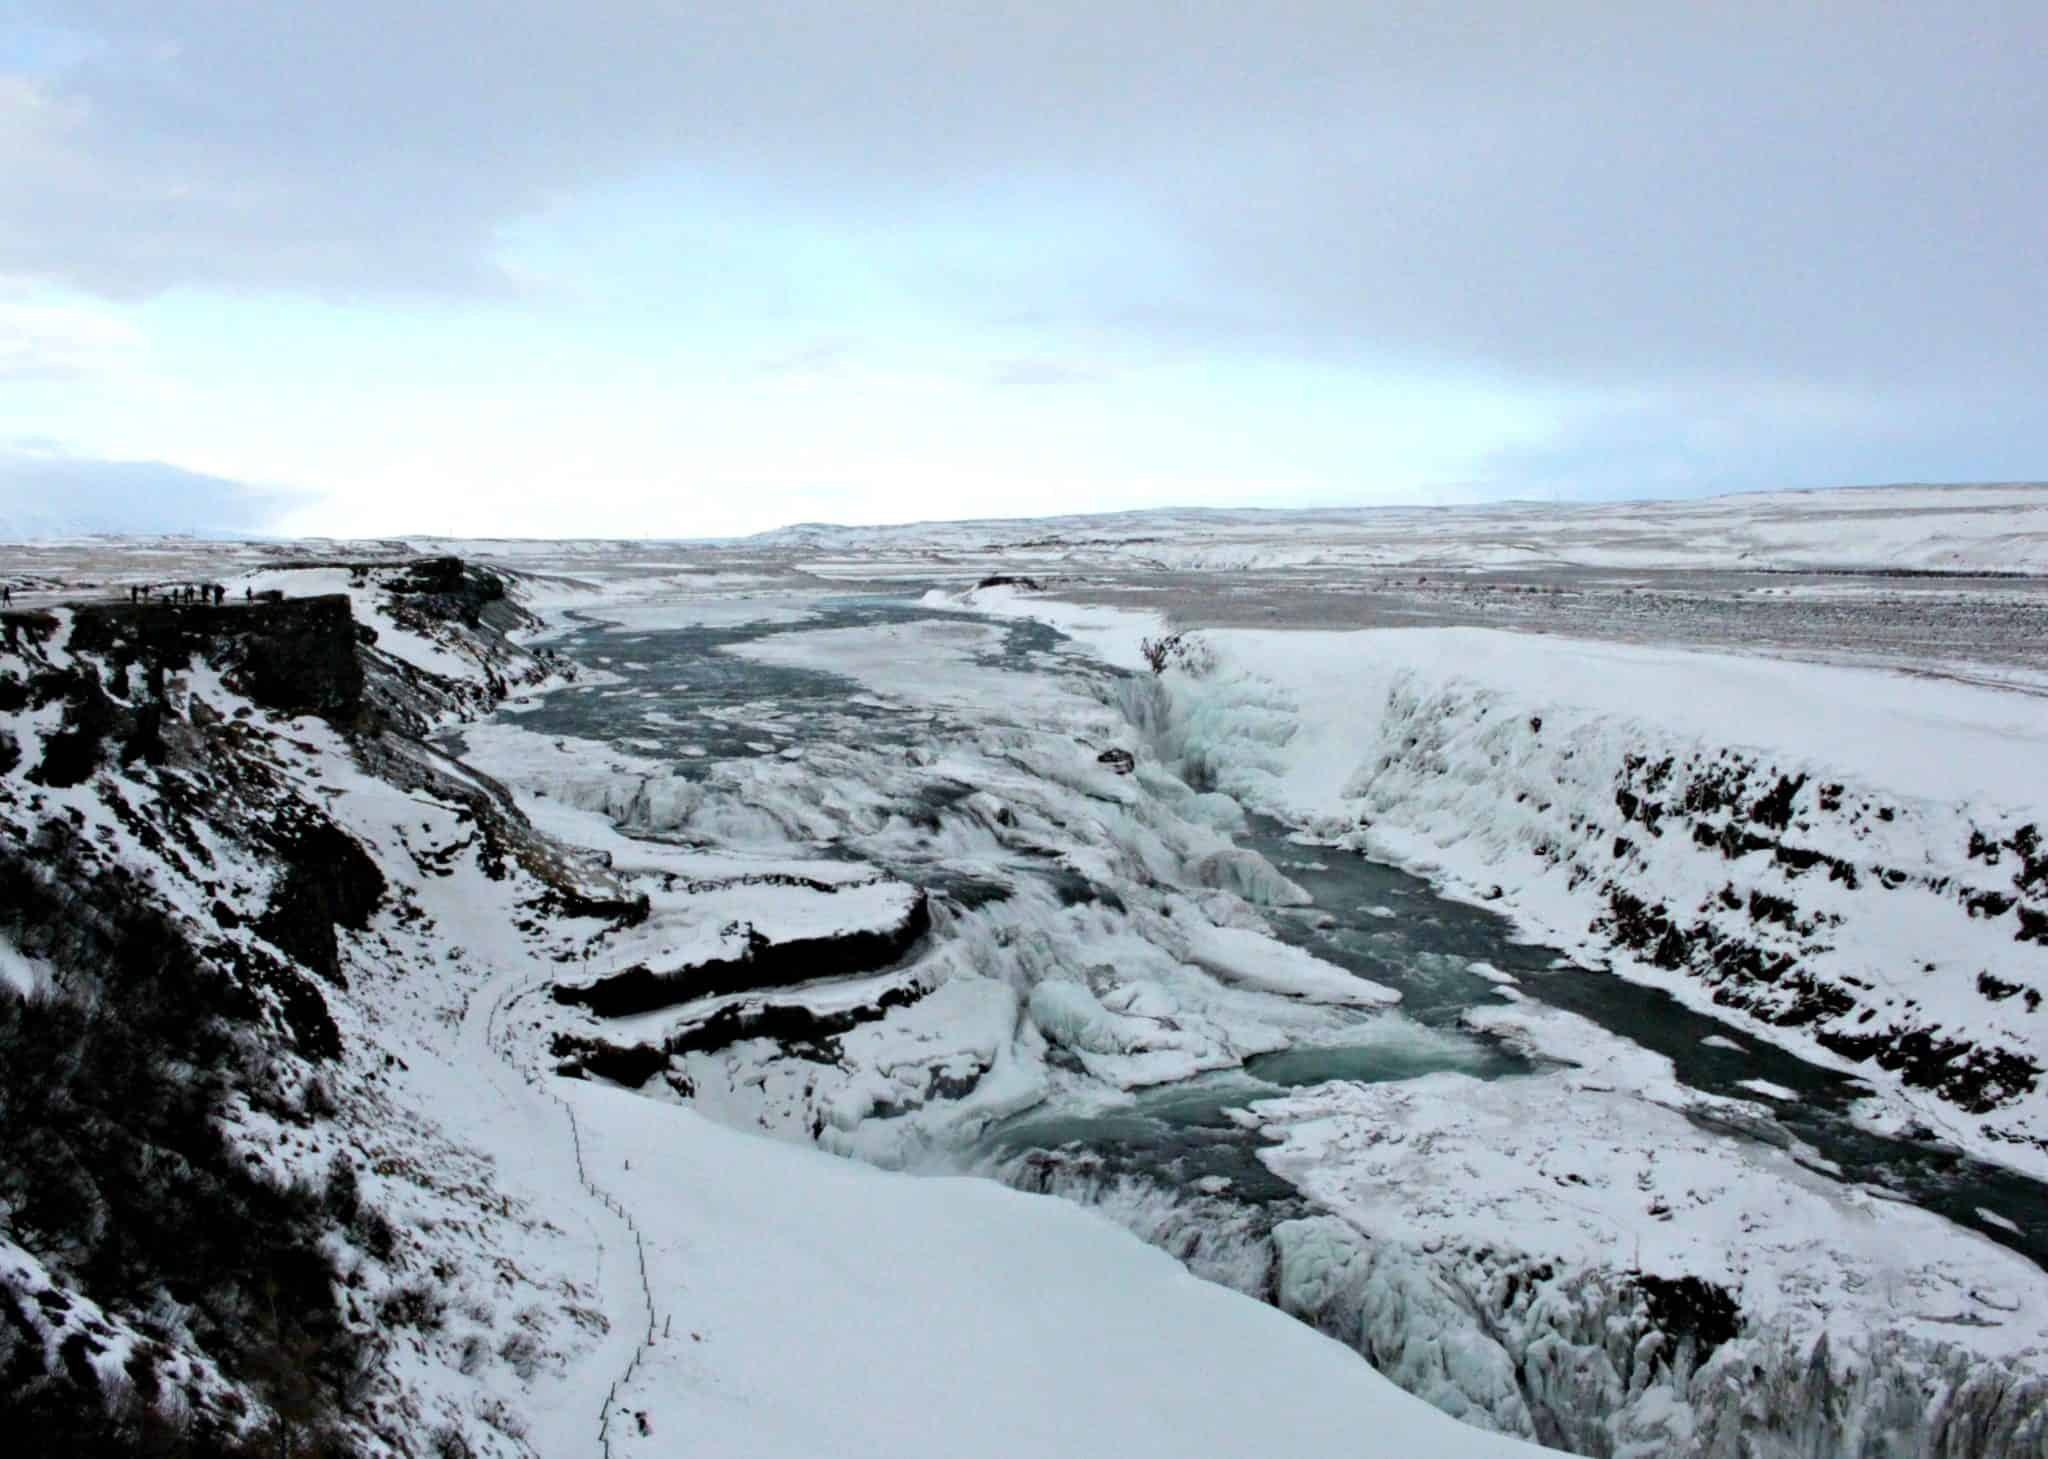 10 Things I've Learnt About Iceland